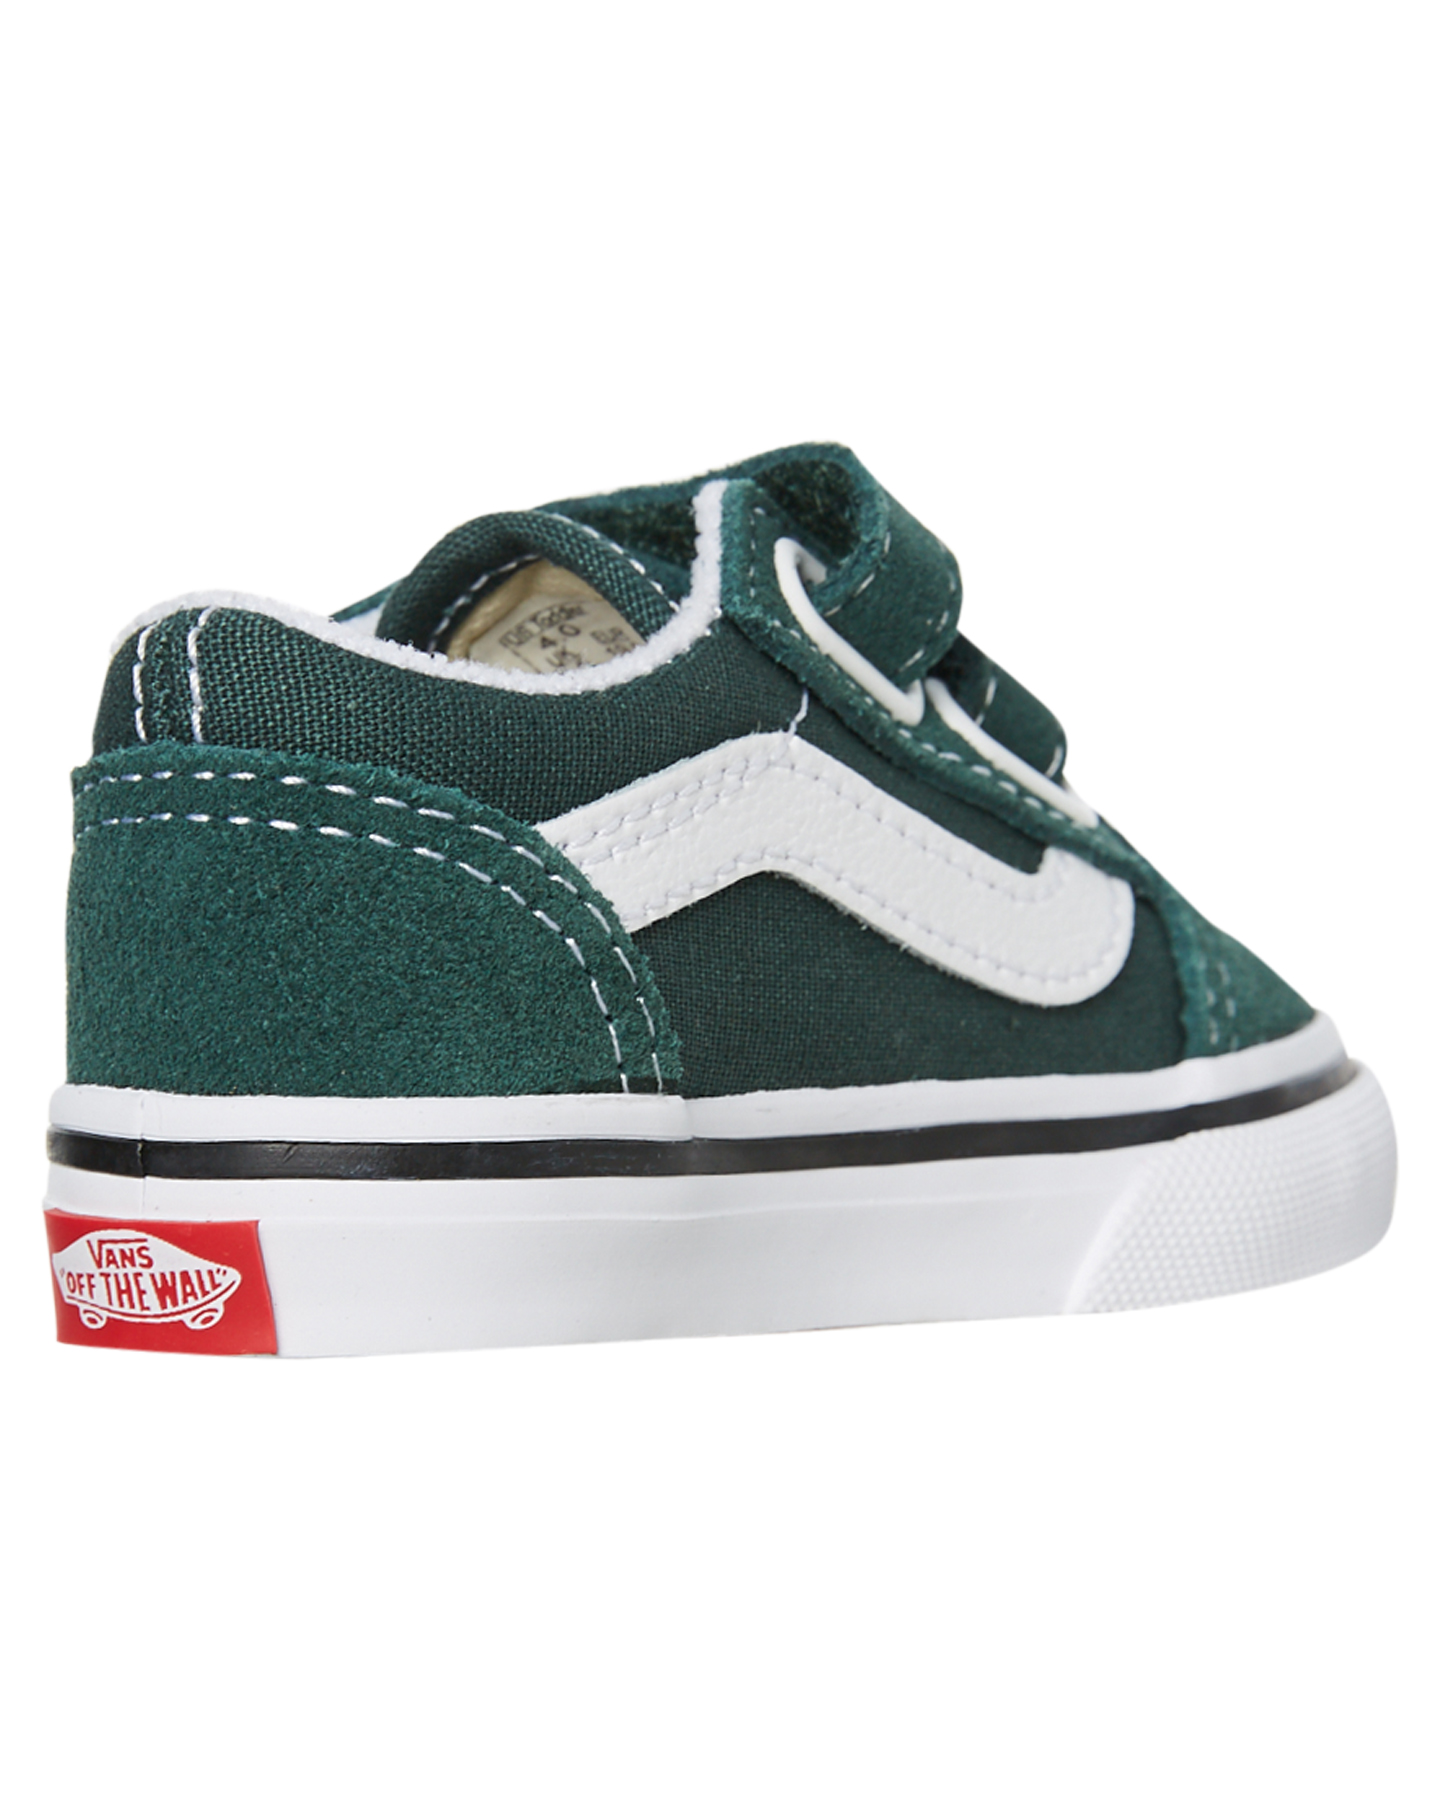 New-Vans-Girls-Kids-Old-Skool-V-Shoe-Rubber-Canvas-Black thumbnail 14